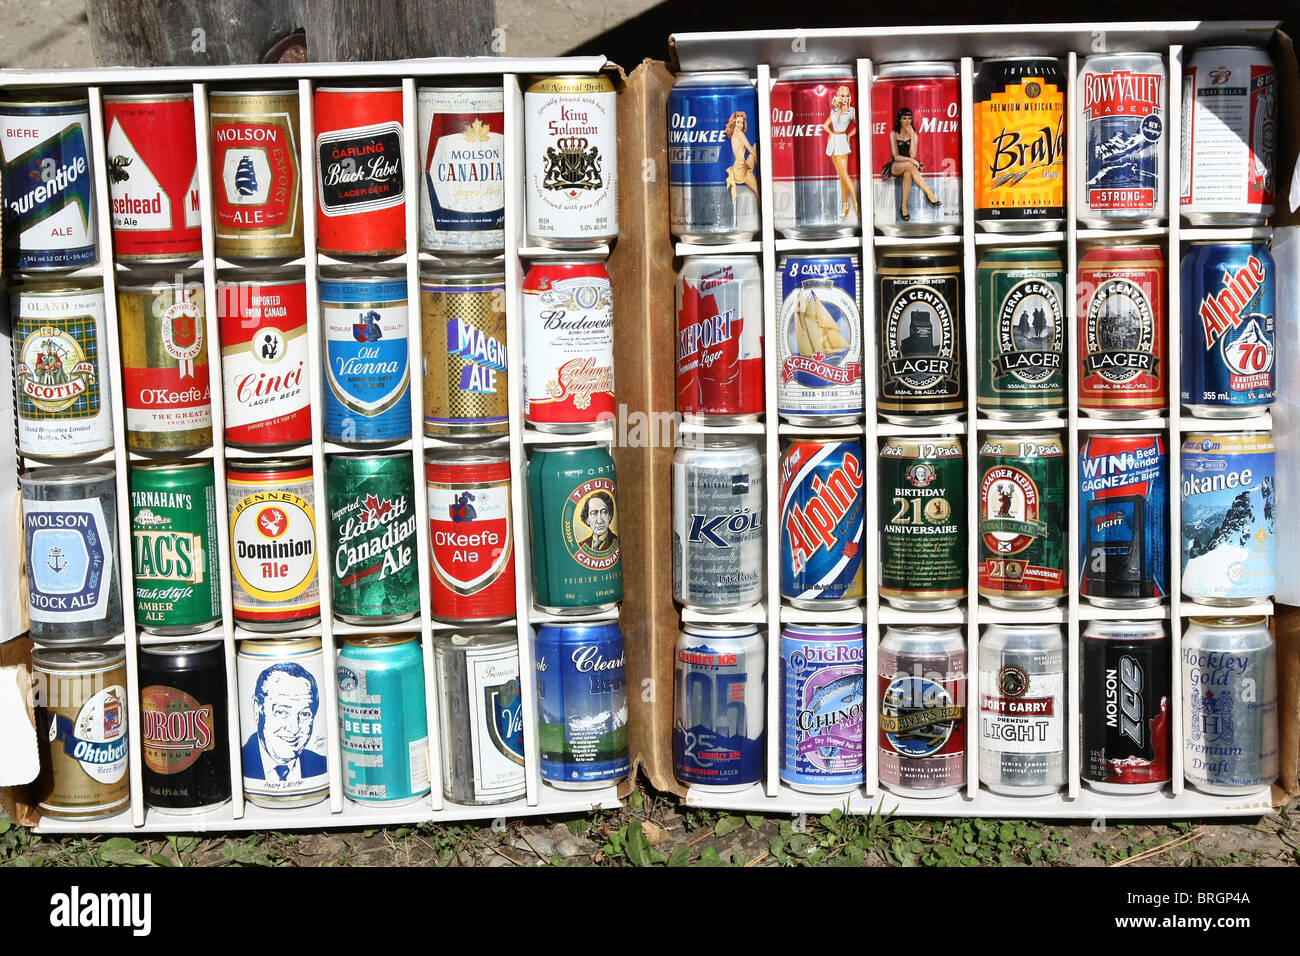 Alamy 31716058 Beer Can Stock Photo Collection -